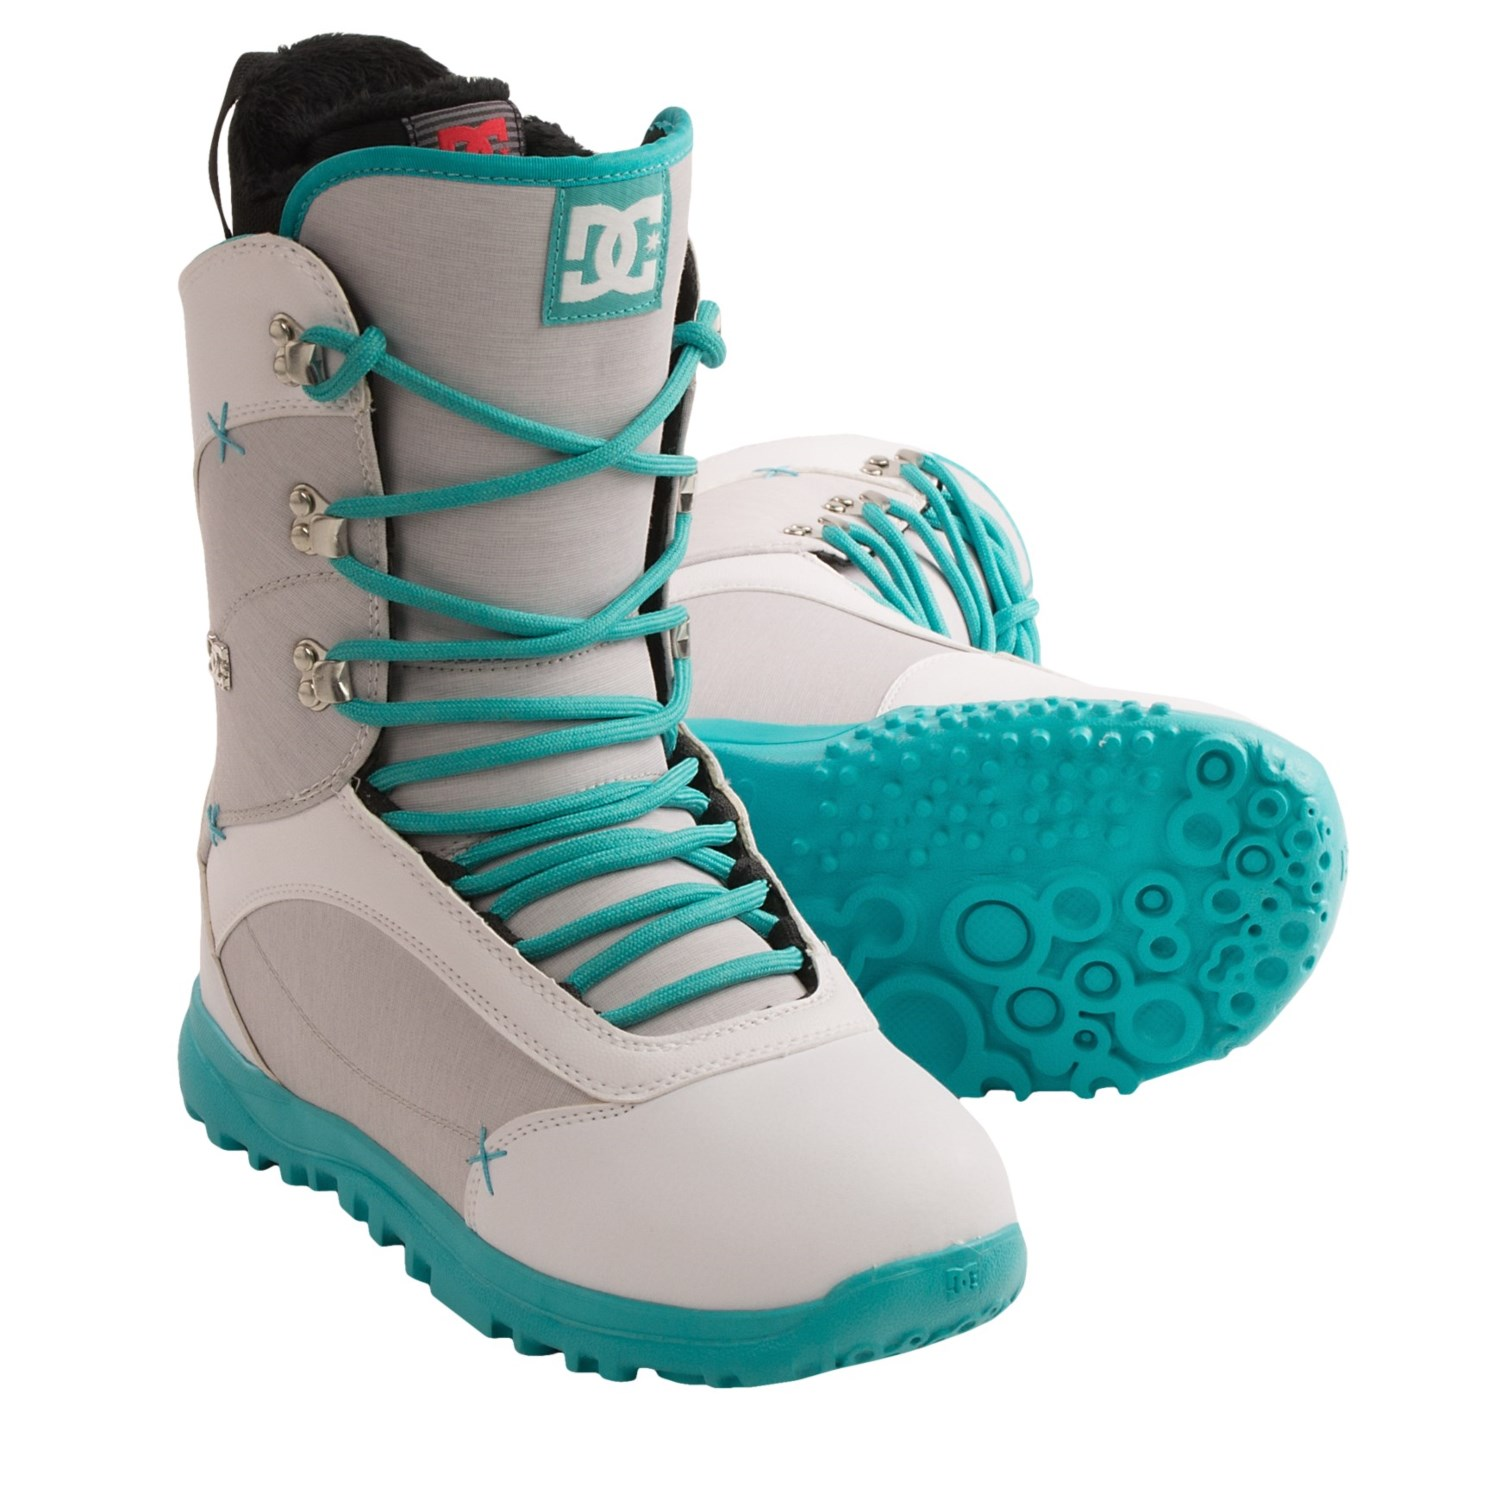 dc shoes karma snowboard boots for save 61